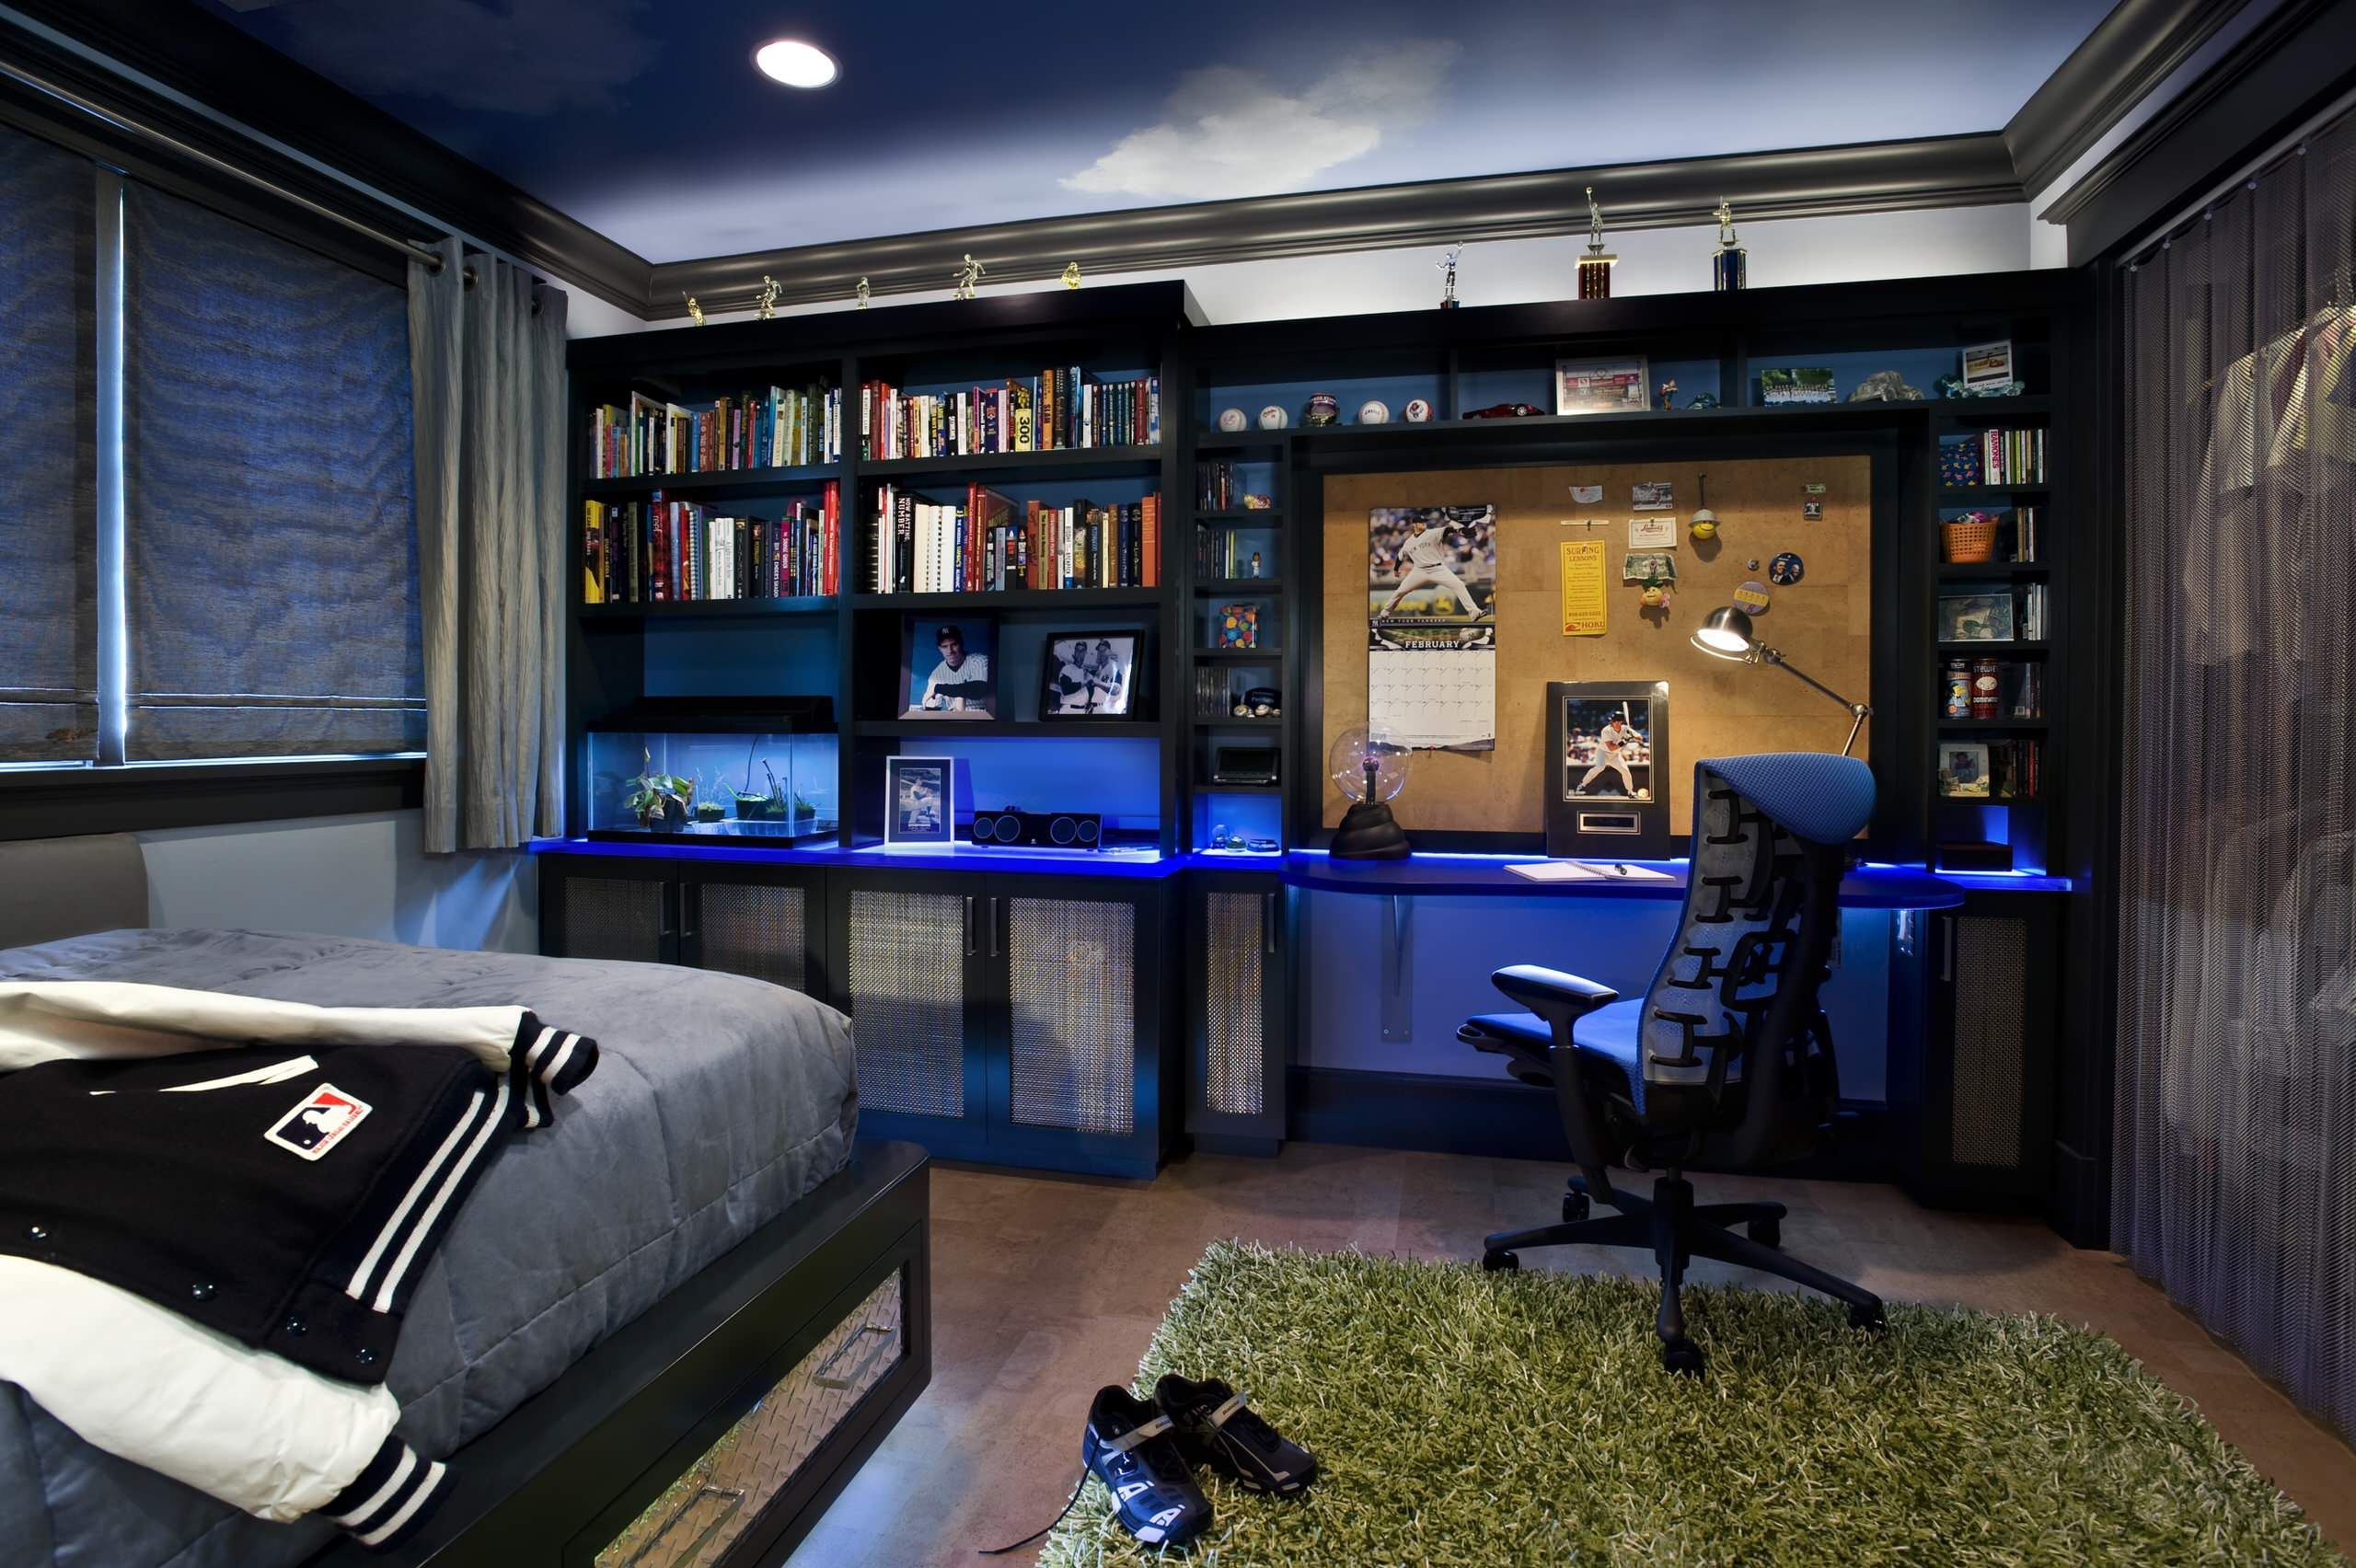 Cool Room Designs for Teenage Guys with Mesmerize Home Decorations: Cool Room Designs For Teenage Guys With Platform Bed And Wall Desk And Shelves Also Shag ... & Cool Room Designs for Teenage Guys with Mesmerize Home Decorations ...